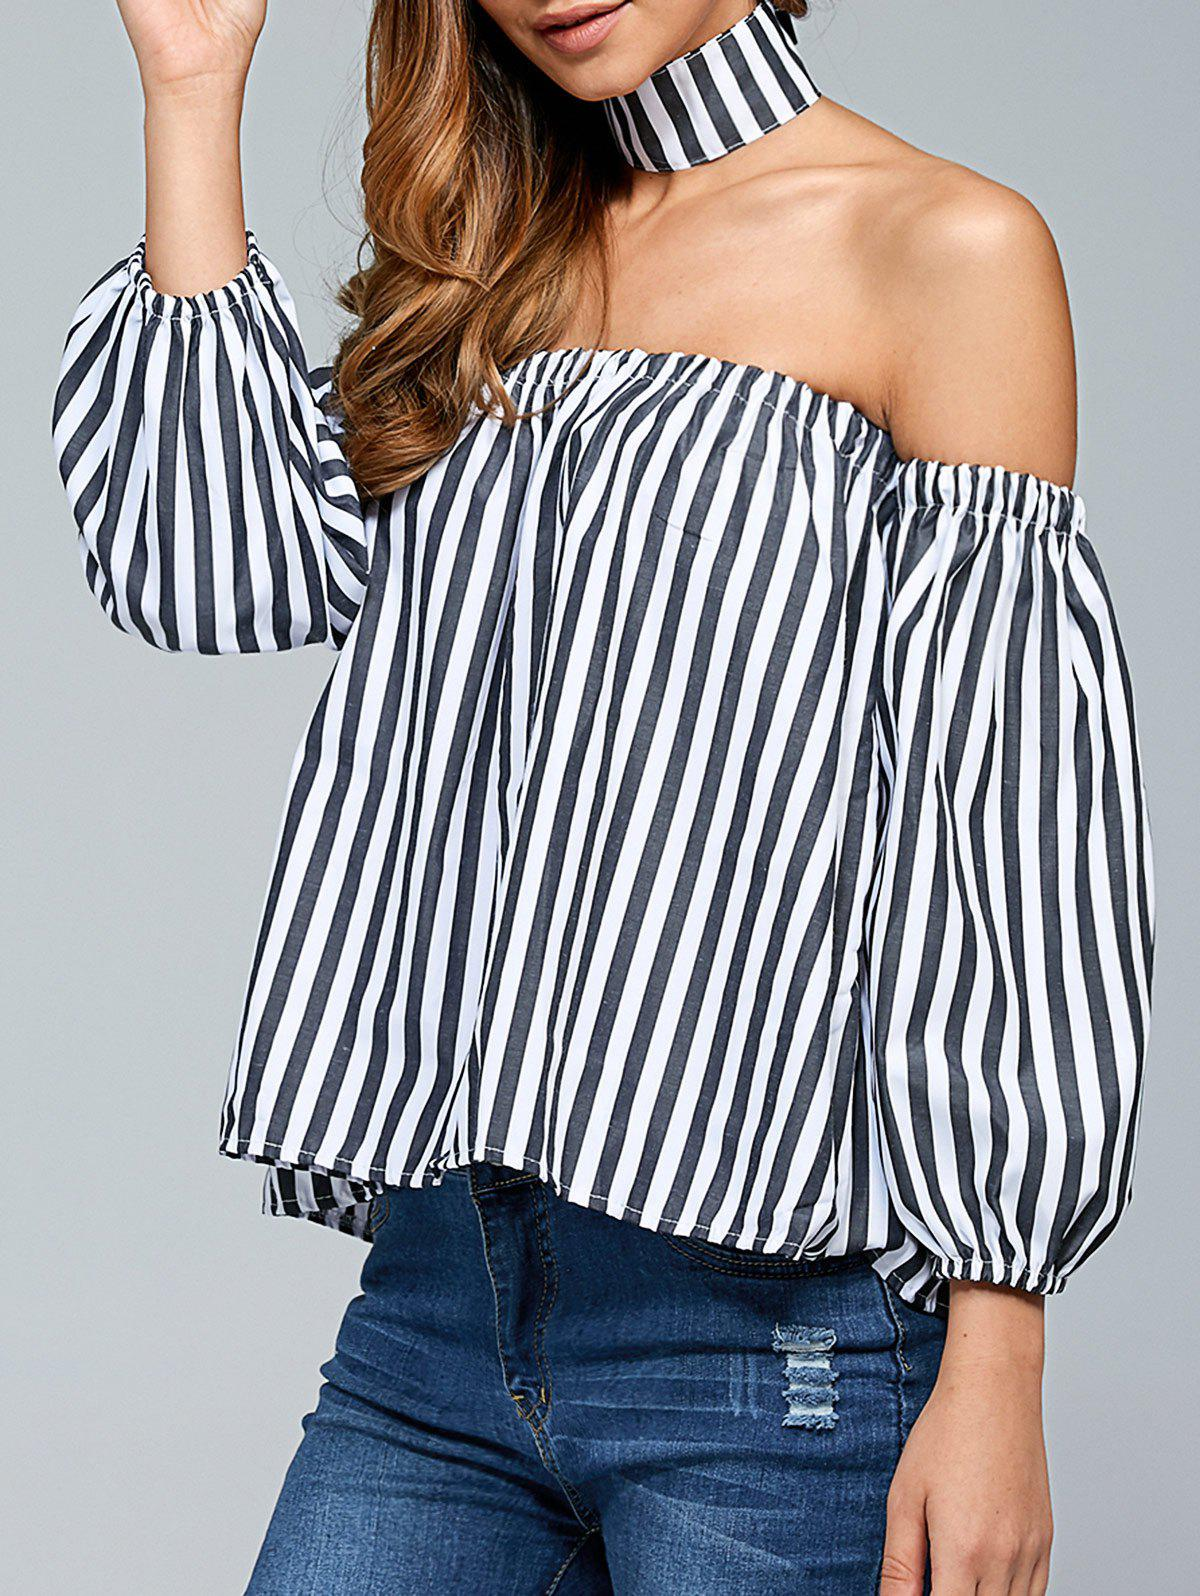 Off The Shoulder Top With Choker - WHITE/BLACK S